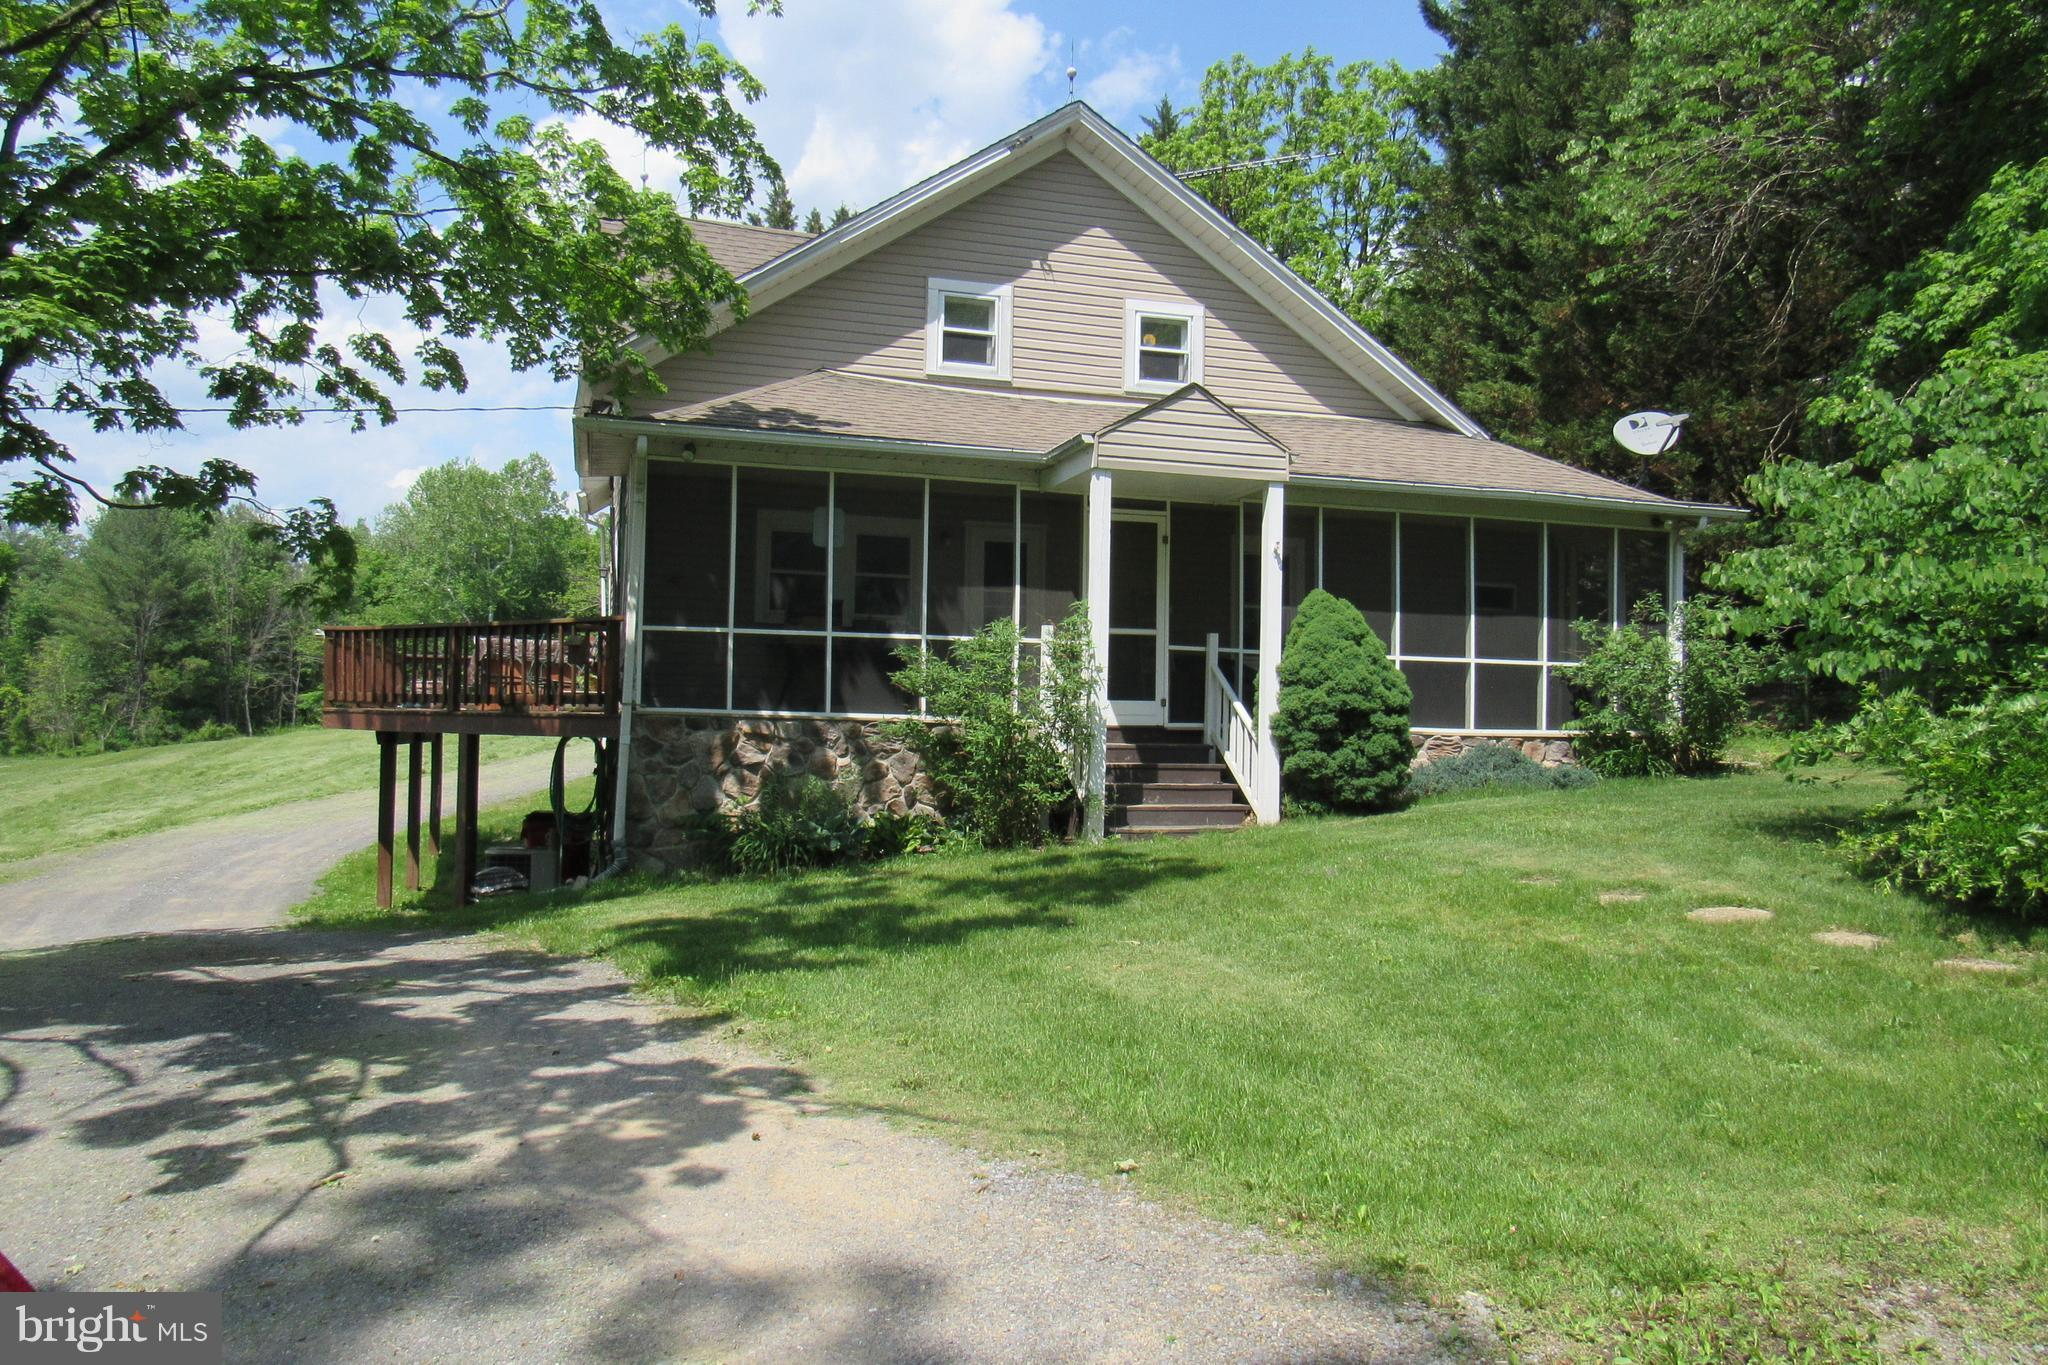 13536 CACAPON ROAD, GREAT CACAPON, WV 25422